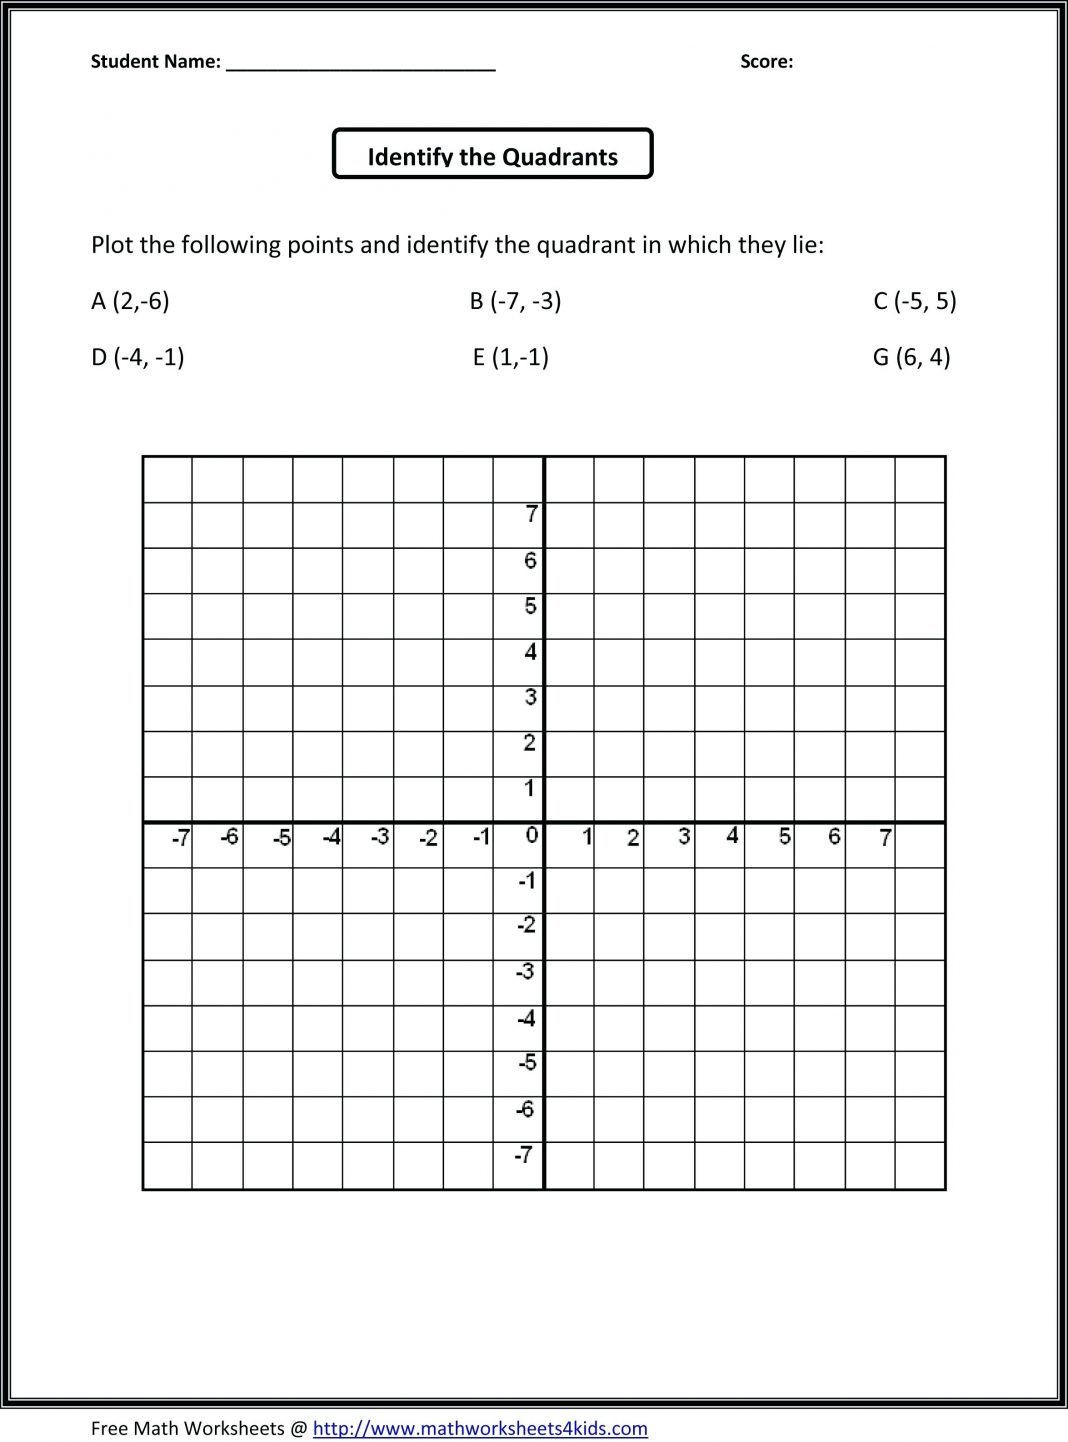 Dot Plot Worksheets 6th Grade 41 Stunning 6th Grade Math Worksheets Design